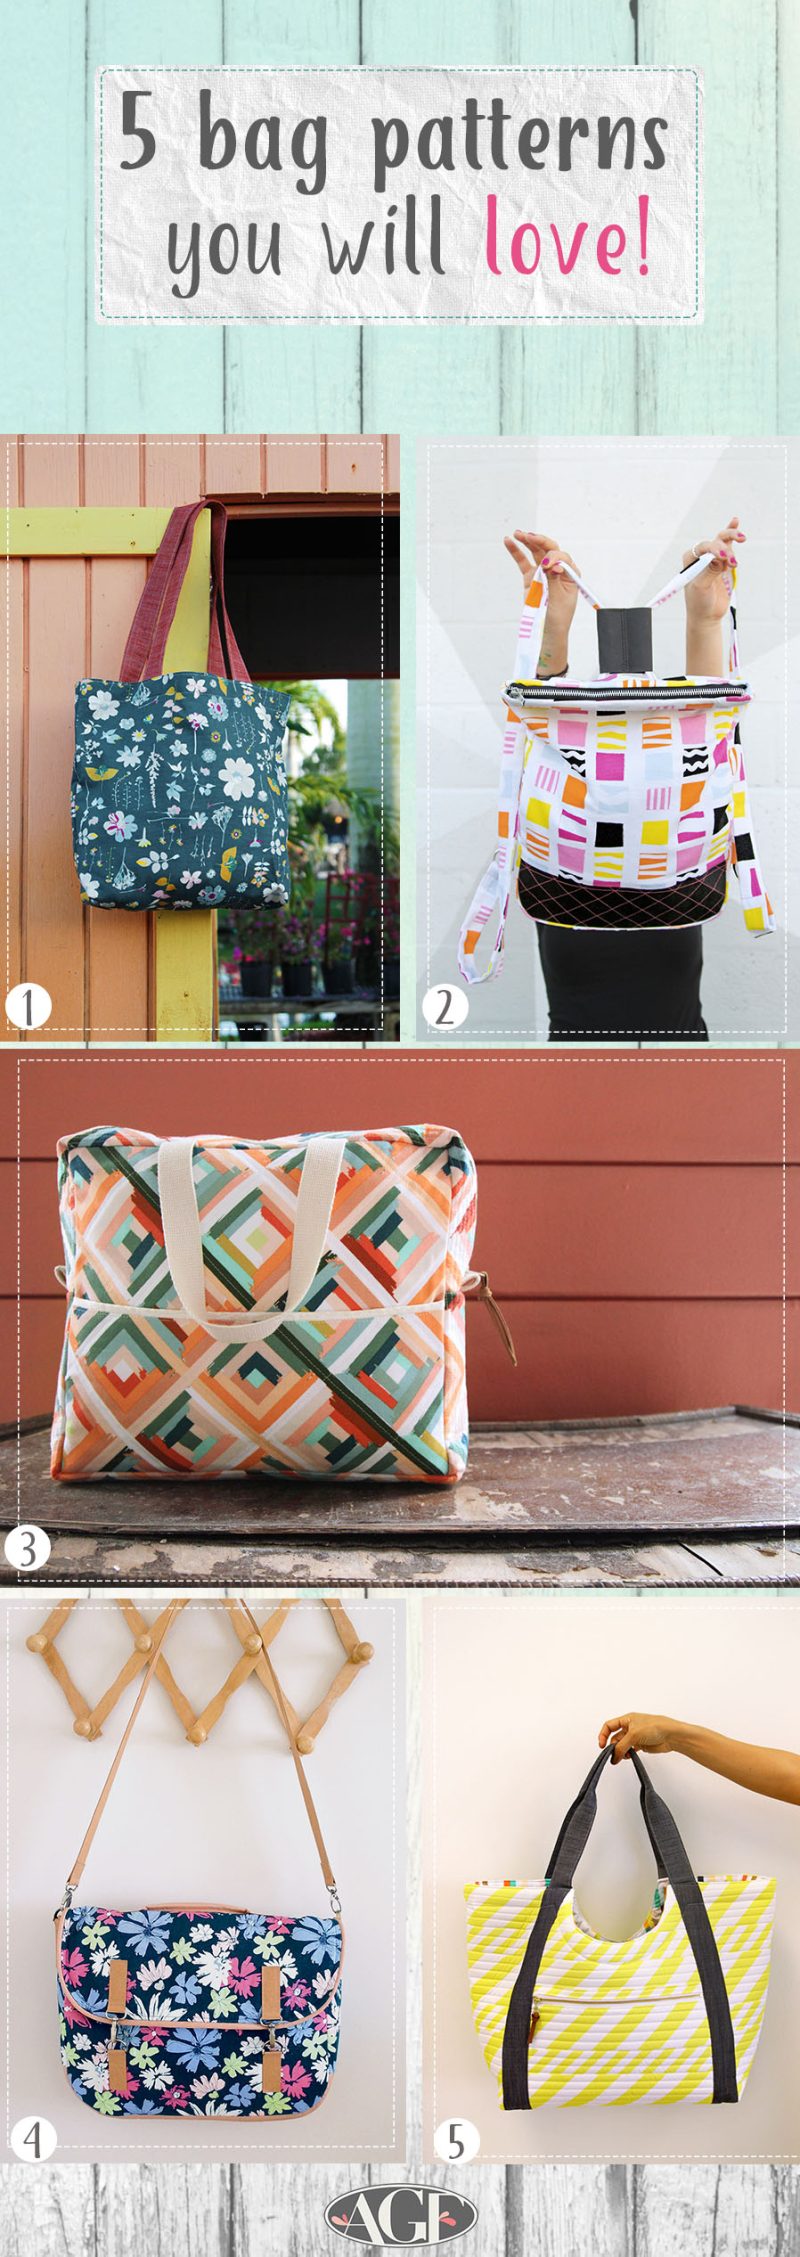 6 bag patterns you will love